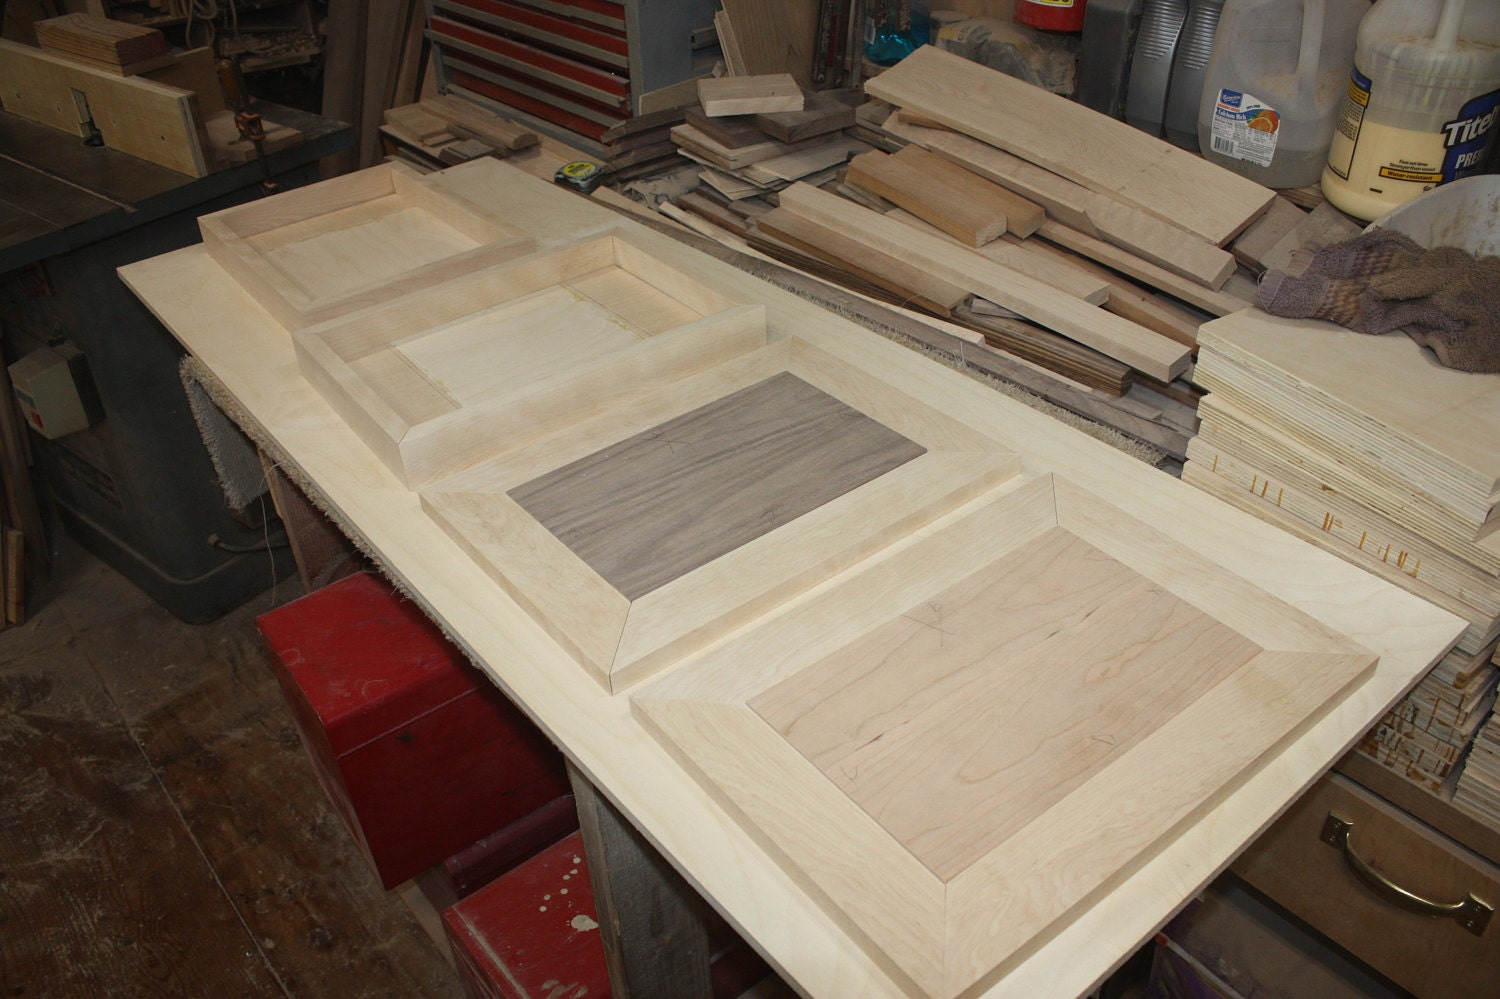 Making Lids and Bases for Jewelry Boxes